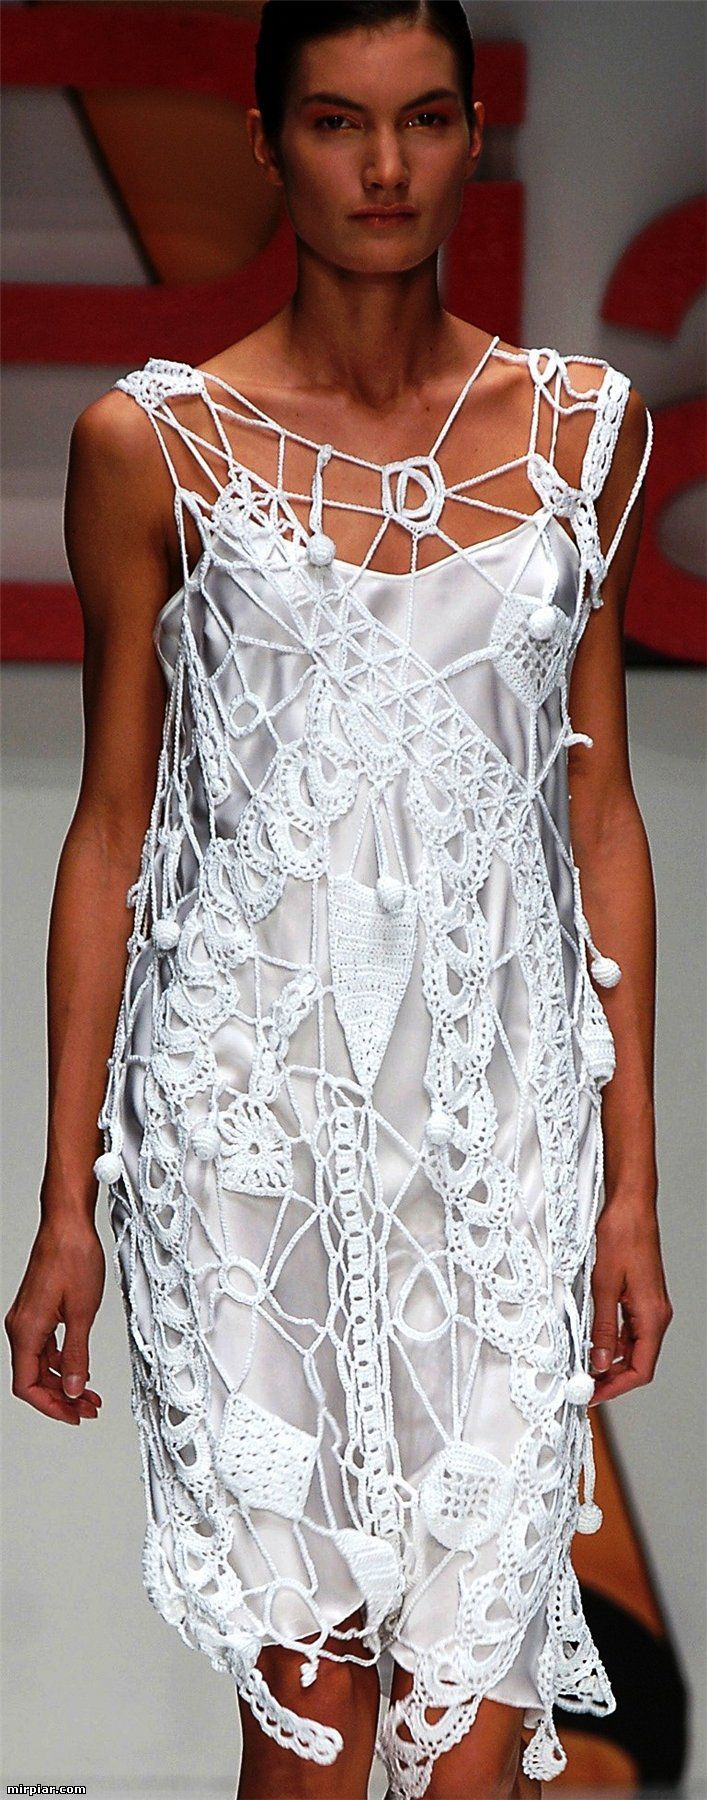 White dress crochet - Find This Pin And More On Crochet